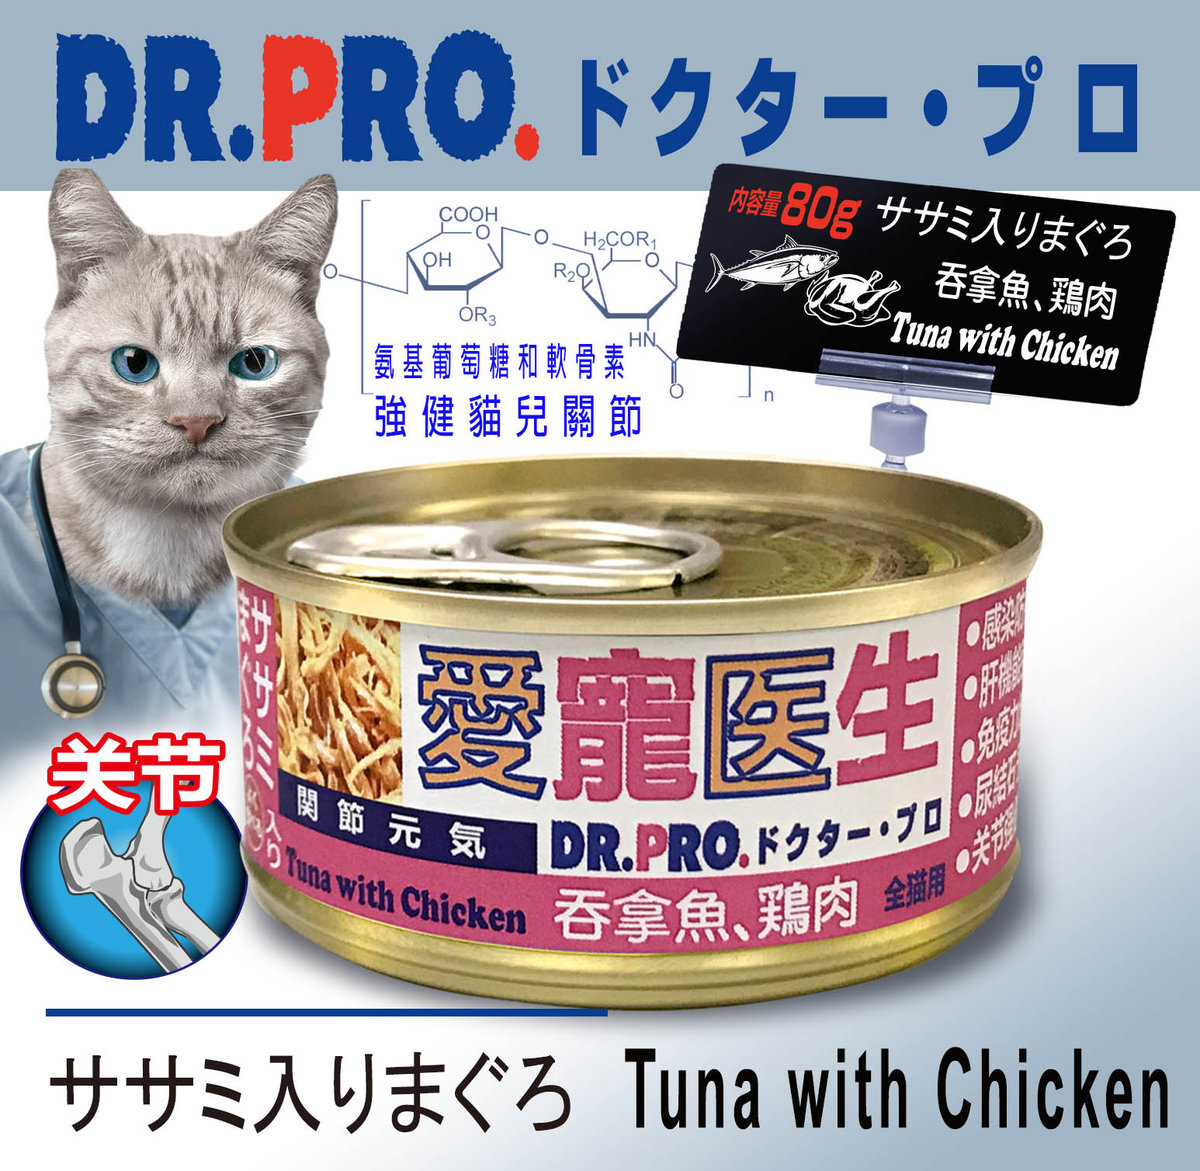 (Joints) - Tuna with Chicken meat Canned cat food 80g/Can